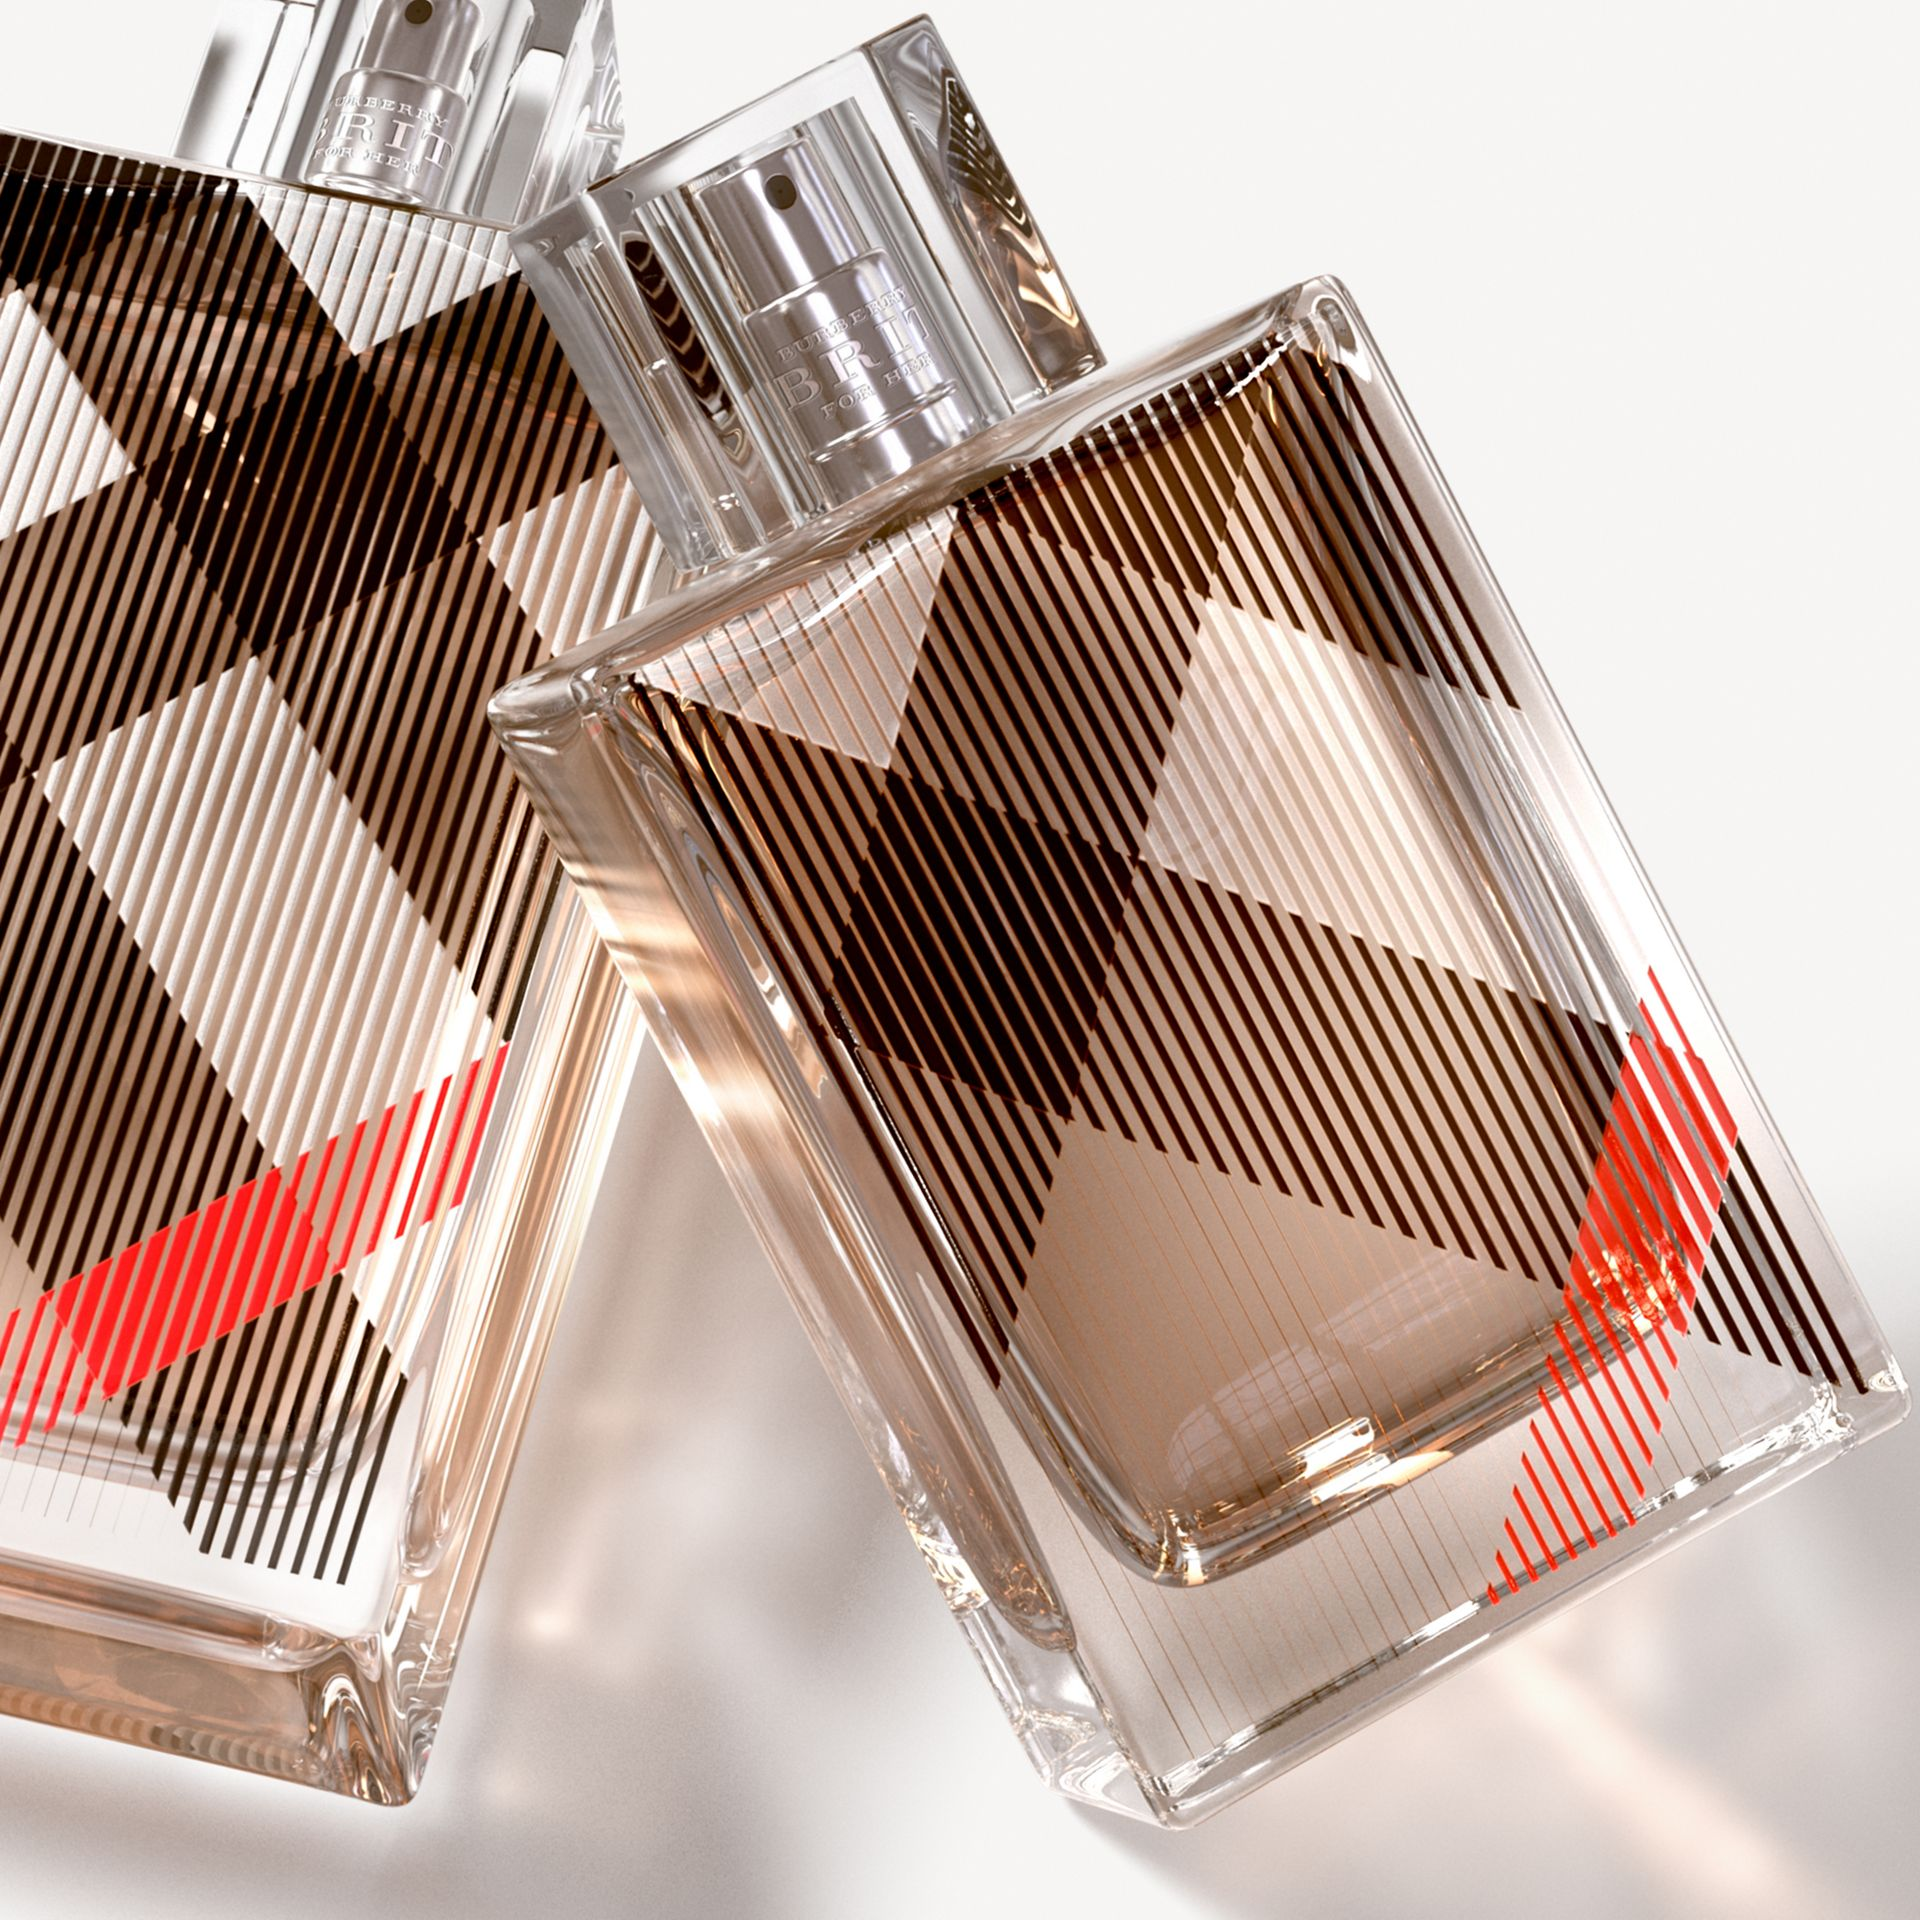 Eau de Parfum Burberry Brit for Her 50 ml - Femme | Burberry - photo de la galerie 1